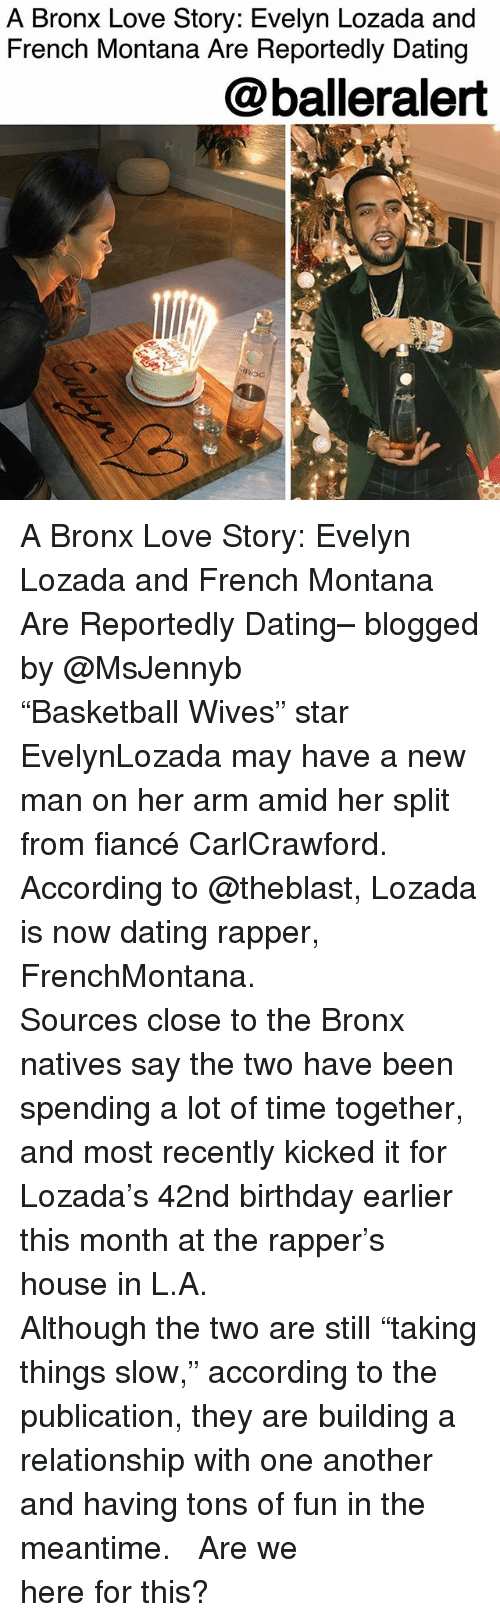 "Birthday, Dating, and Love: A Bronx Love Story: Evelyn Lozada and  French Montana Are Reportedly Dating  @balleralert  ROC  Roc A Bronx Love Story: Evelyn Lozada and French Montana Are Reportedly Dating– blogged by @MsJennyb ⠀⠀⠀⠀⠀⠀⠀ ⠀⠀⠀⠀⠀⠀⠀ ""Basketball Wives"" star EvelynLozada may have a new man on her arm amid her split from fiancé CarlCrawford. According to @theblast, Lozada is now dating rapper, FrenchMontana. ⠀⠀⠀⠀⠀⠀⠀ ⠀⠀⠀⠀⠀⠀⠀ Sources close to the Bronx natives say the two have been spending a lot of time together, and most recently kicked it for Lozada's 42nd birthday earlier this month at the rapper's house in L.A. ⠀⠀⠀⠀⠀⠀⠀ ⠀⠀⠀⠀⠀⠀⠀ Although the two are still ""taking things slow,"" according to the publication, they are building a relationship with one another and having tons of fun in the meantime. ⠀⠀⠀⠀⠀⠀⠀ ⠀⠀⠀⠀⠀⠀⠀ Are we here for this?"